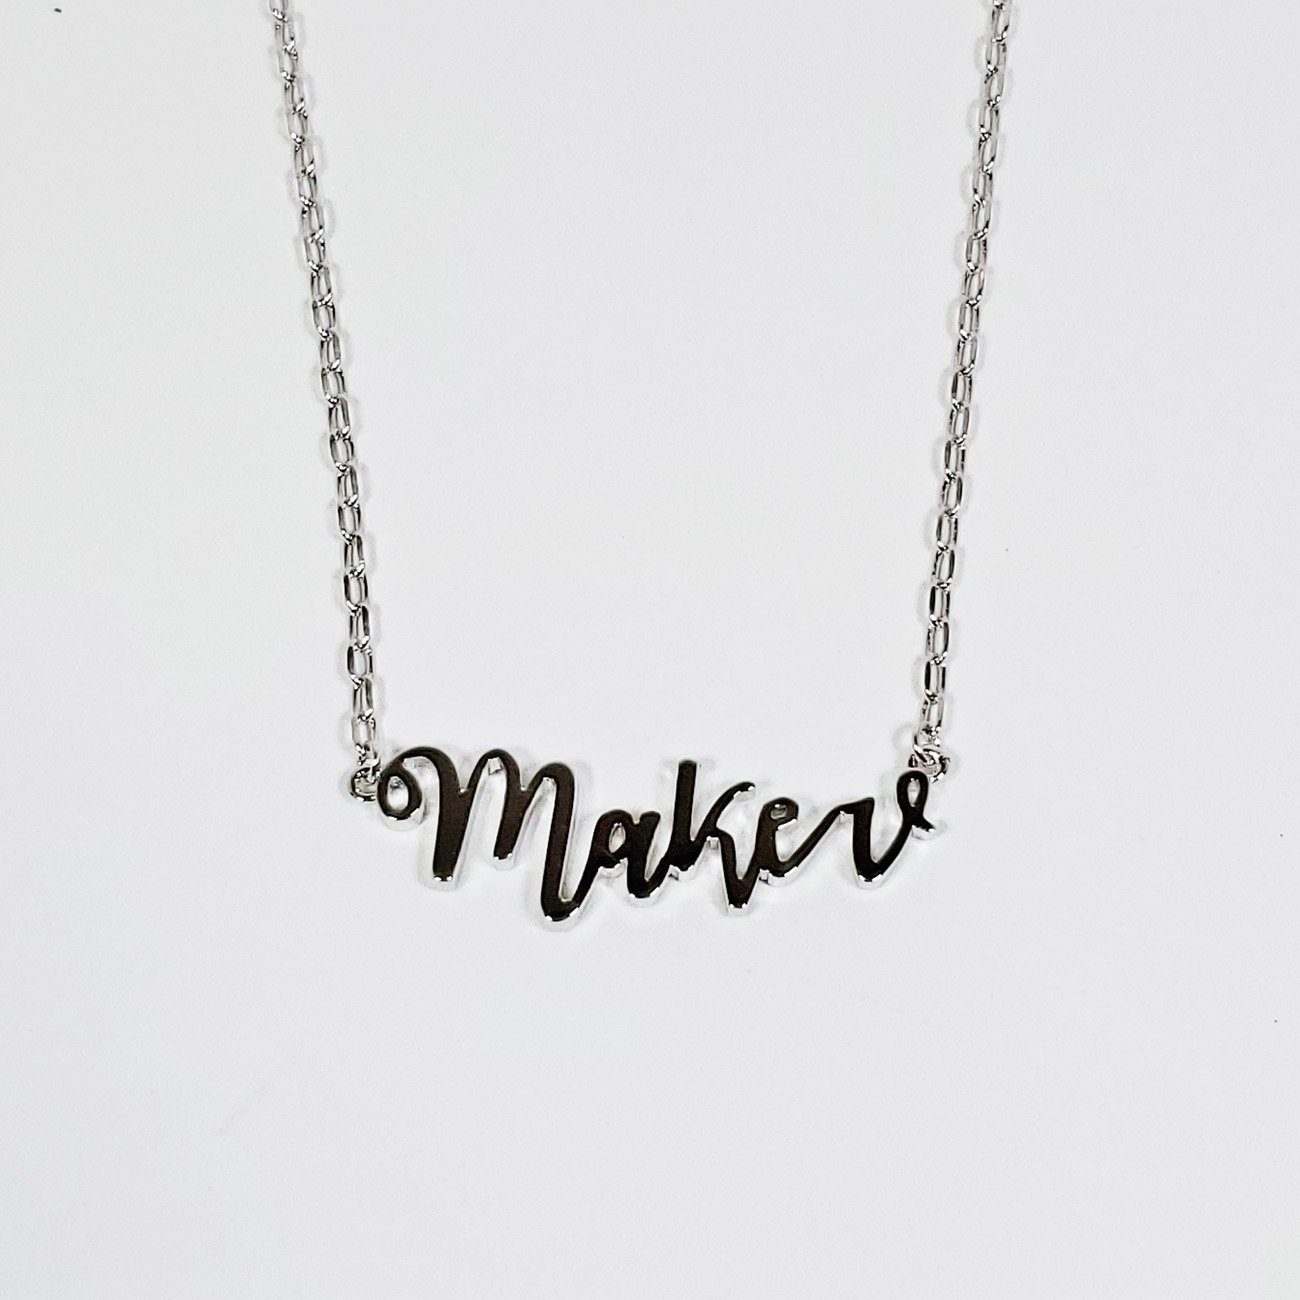 Maker Necklace